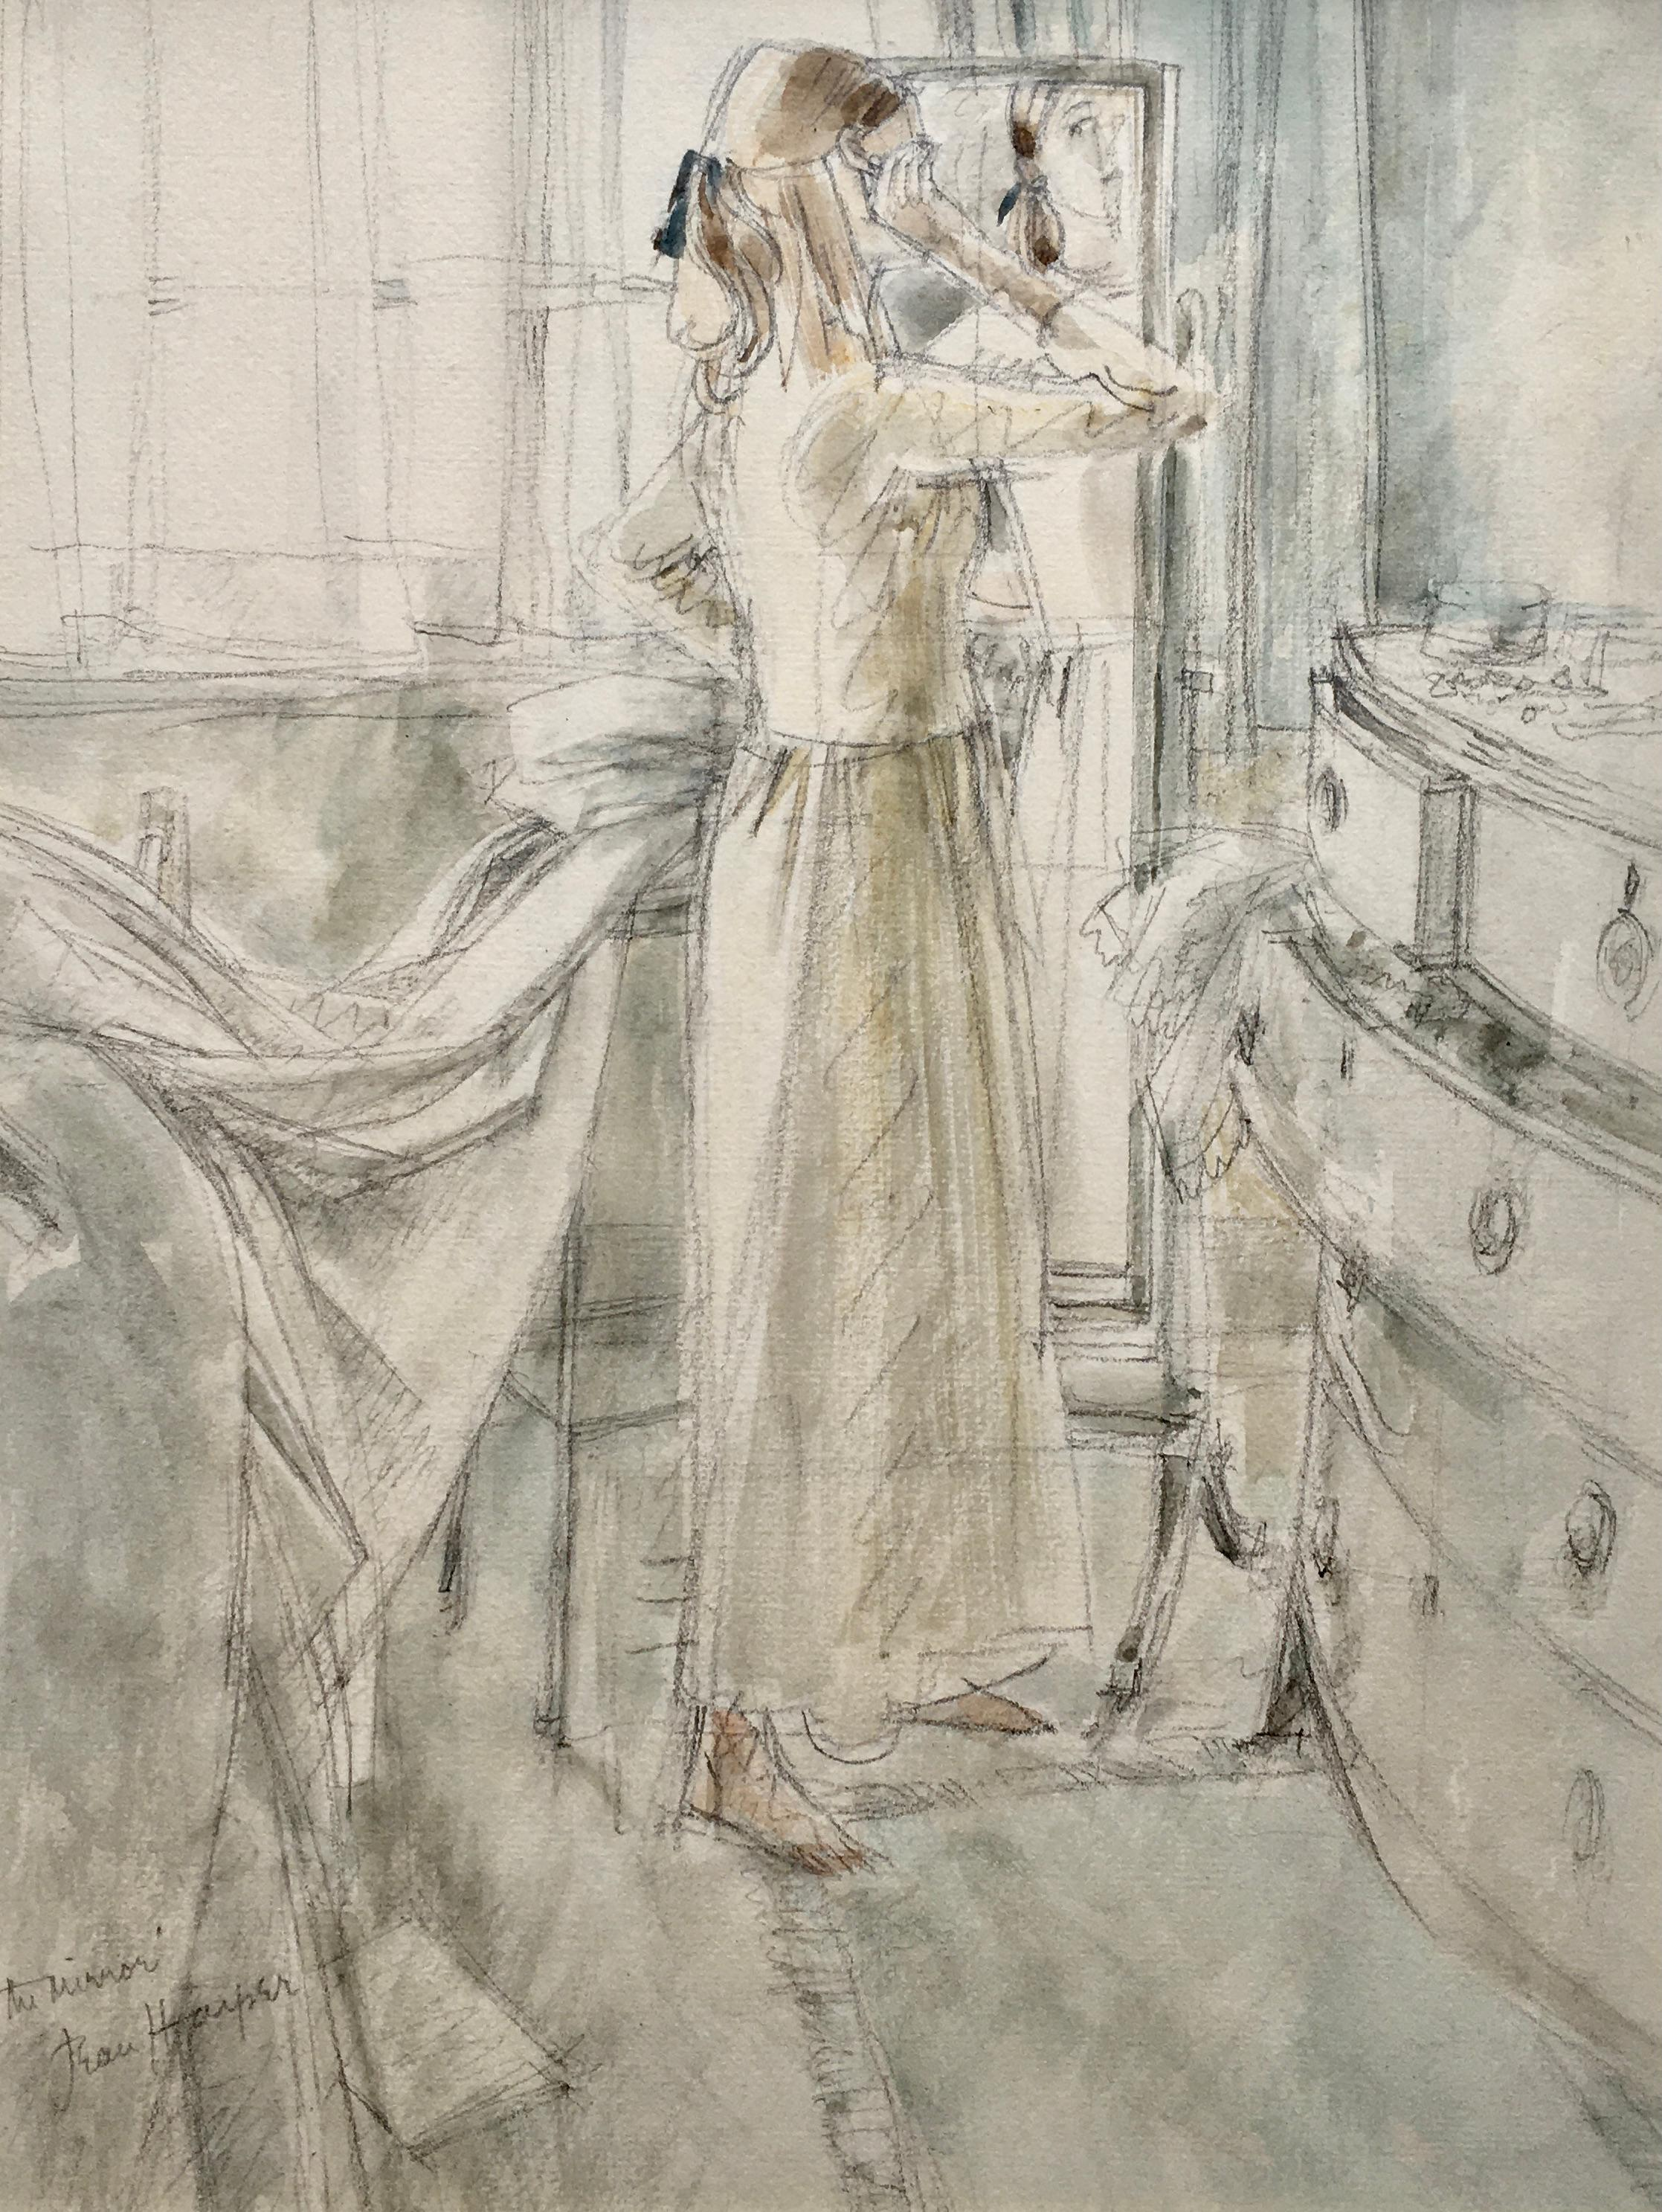 The Mirror - 20th Century British watercolour drawing by Jean Harper